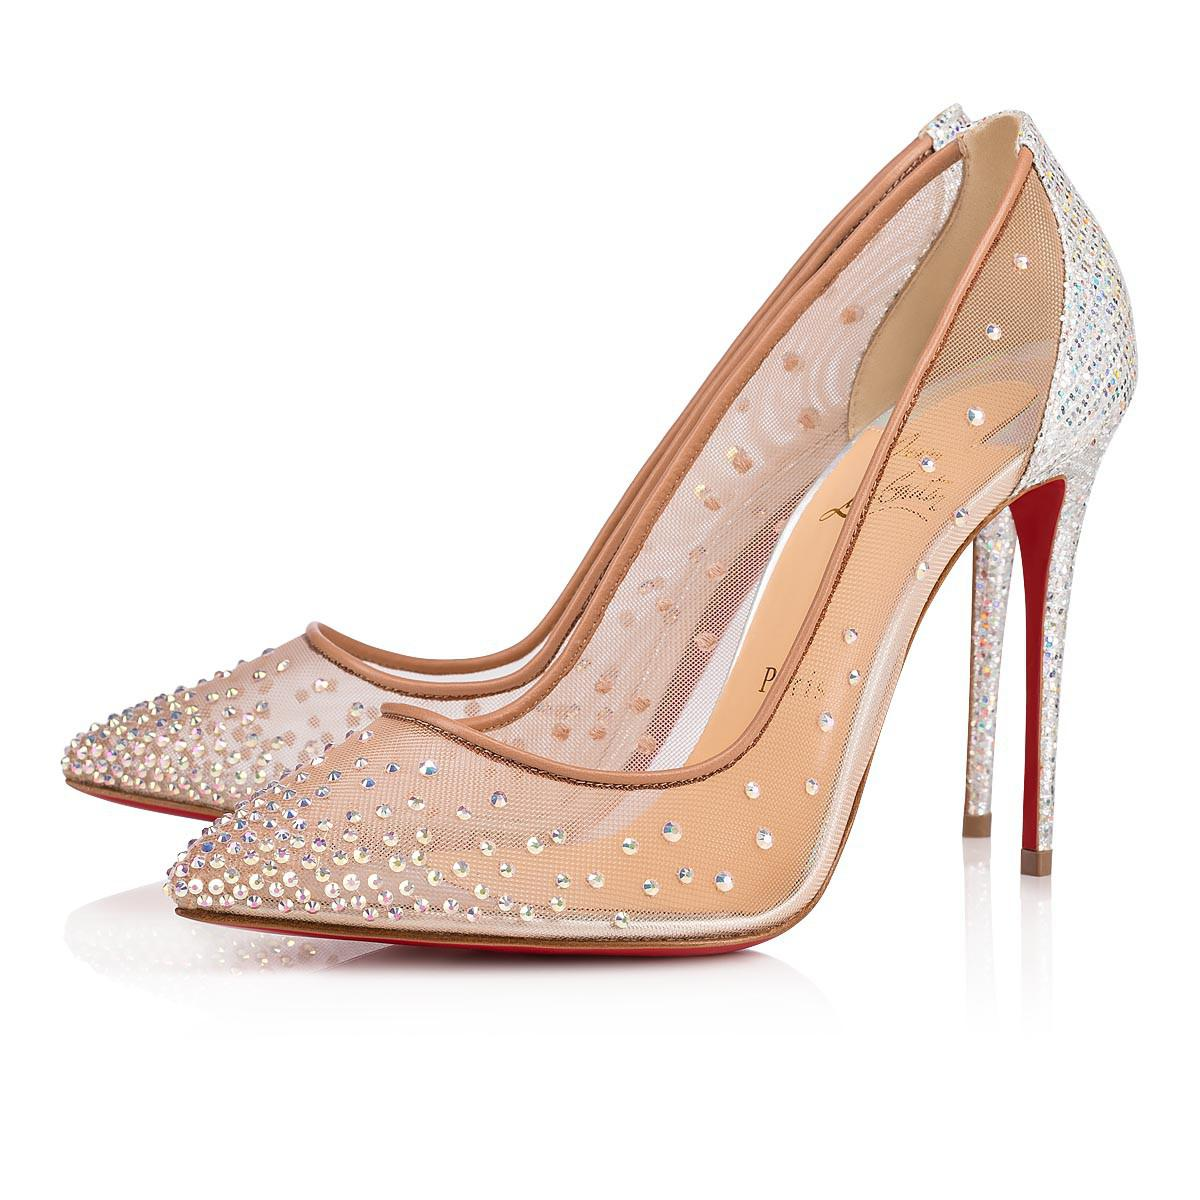 check out 3ccaf 5389c Christian Louboutin Follies Strass Rete/glitter Rainbow 100 ...